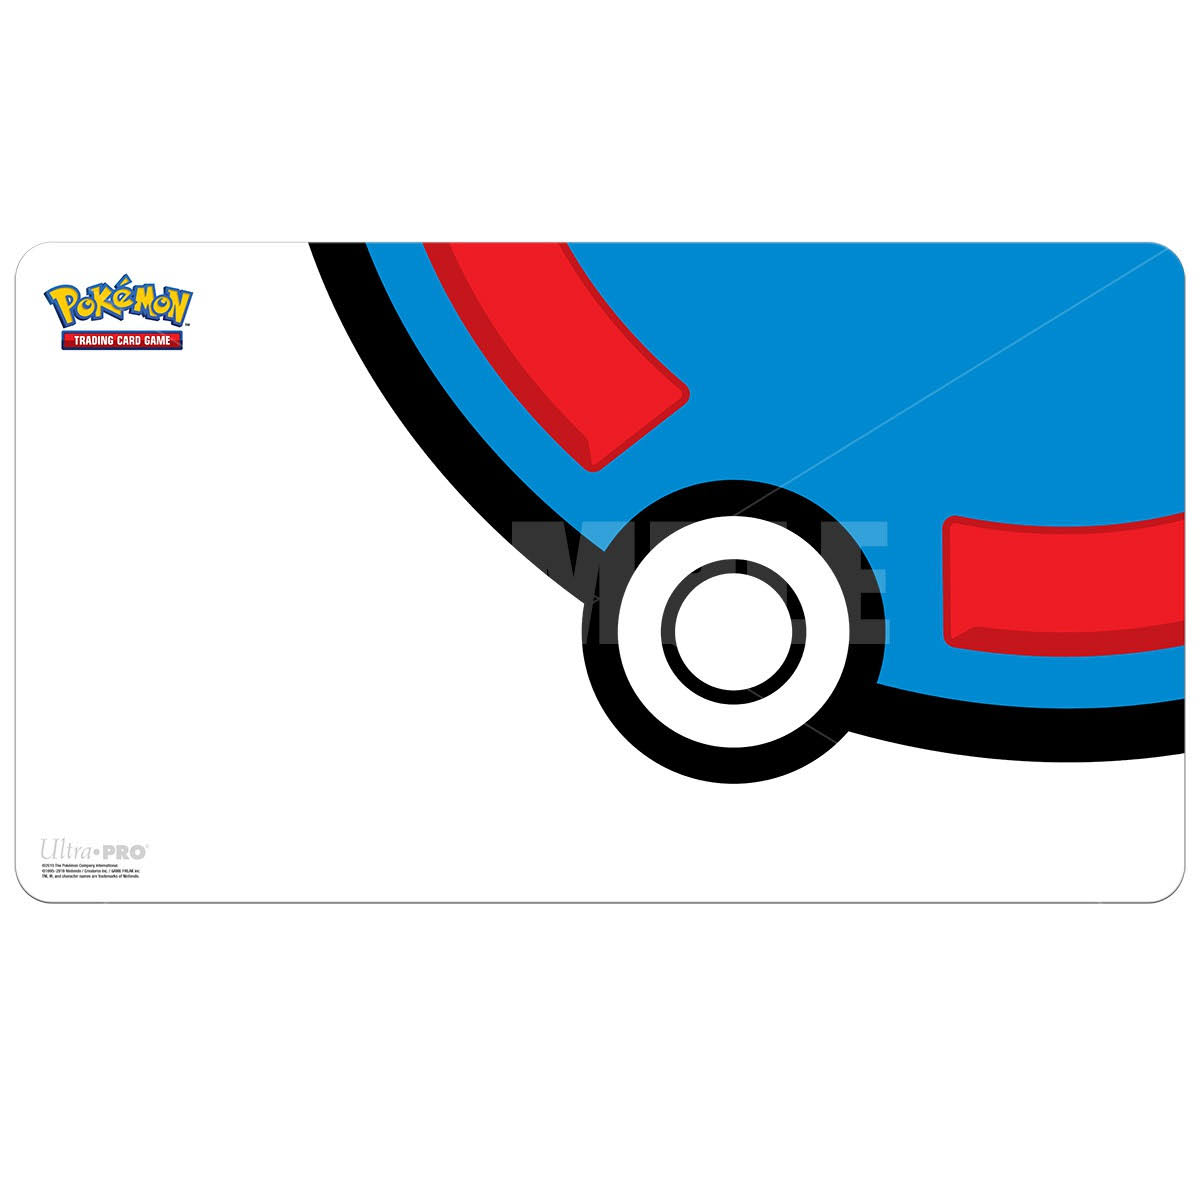 Ultra Pro Playmat: Pokemon - Great Ball